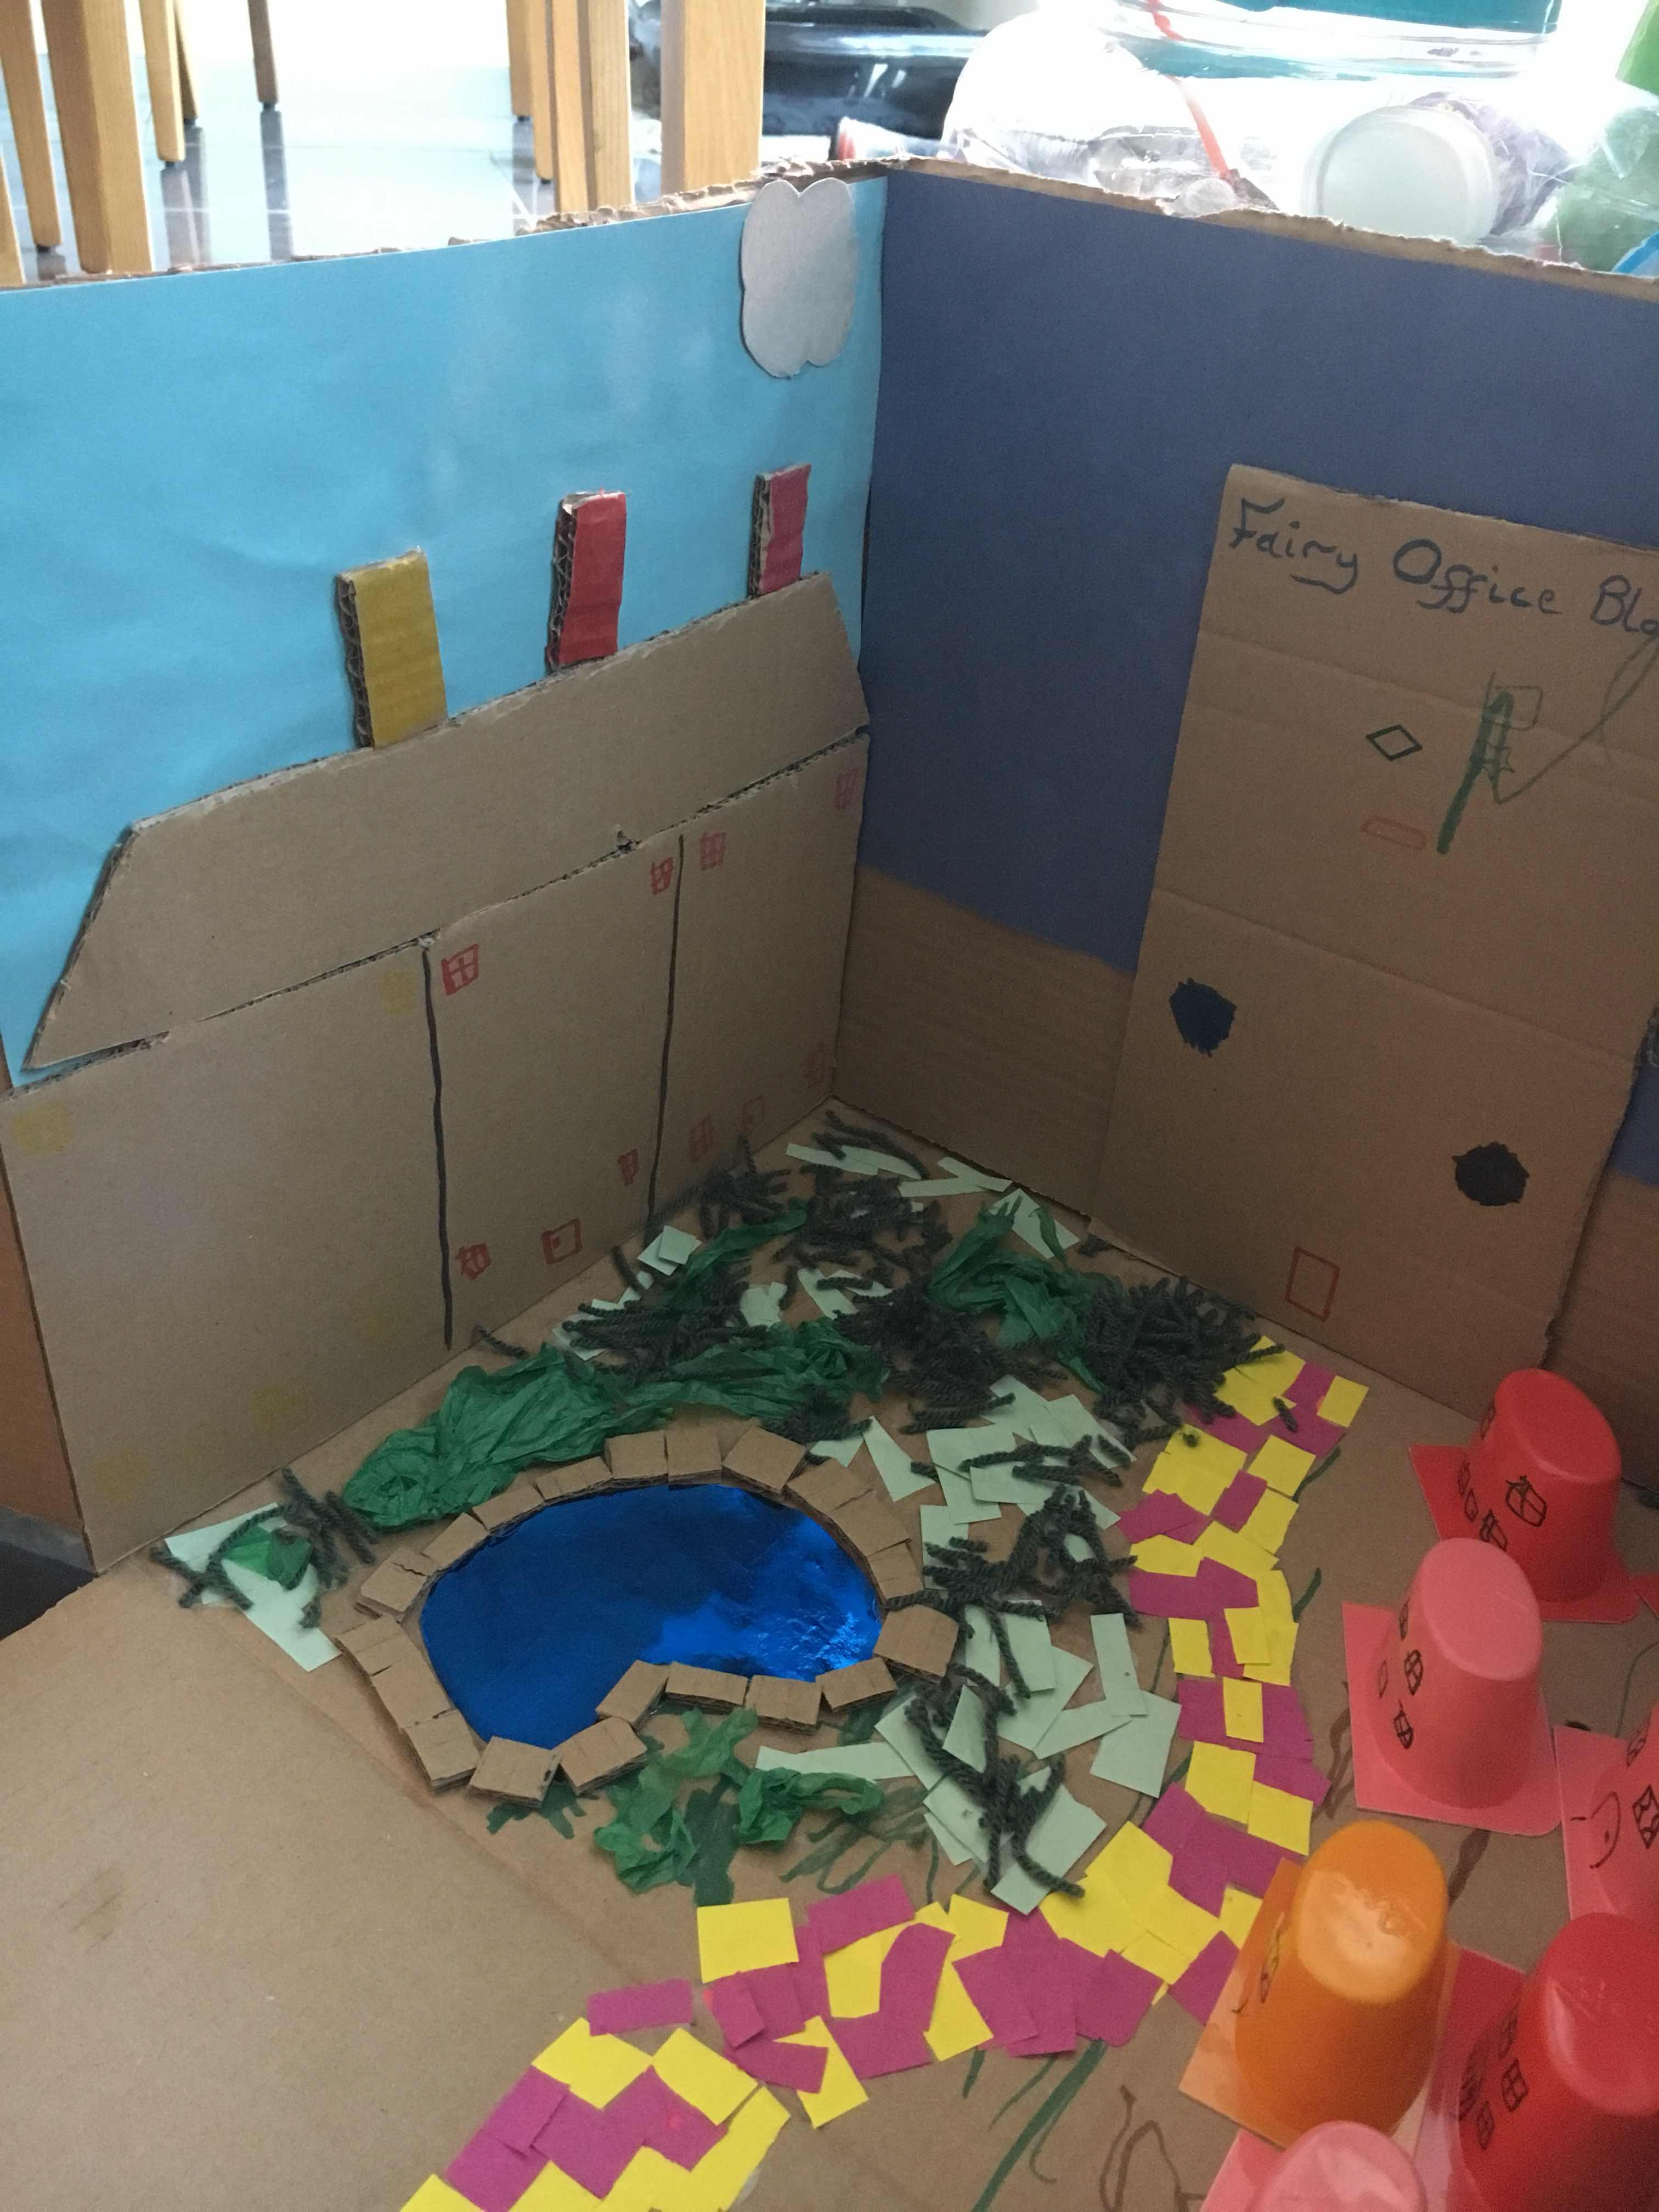 Fairy land made from a cardboard box